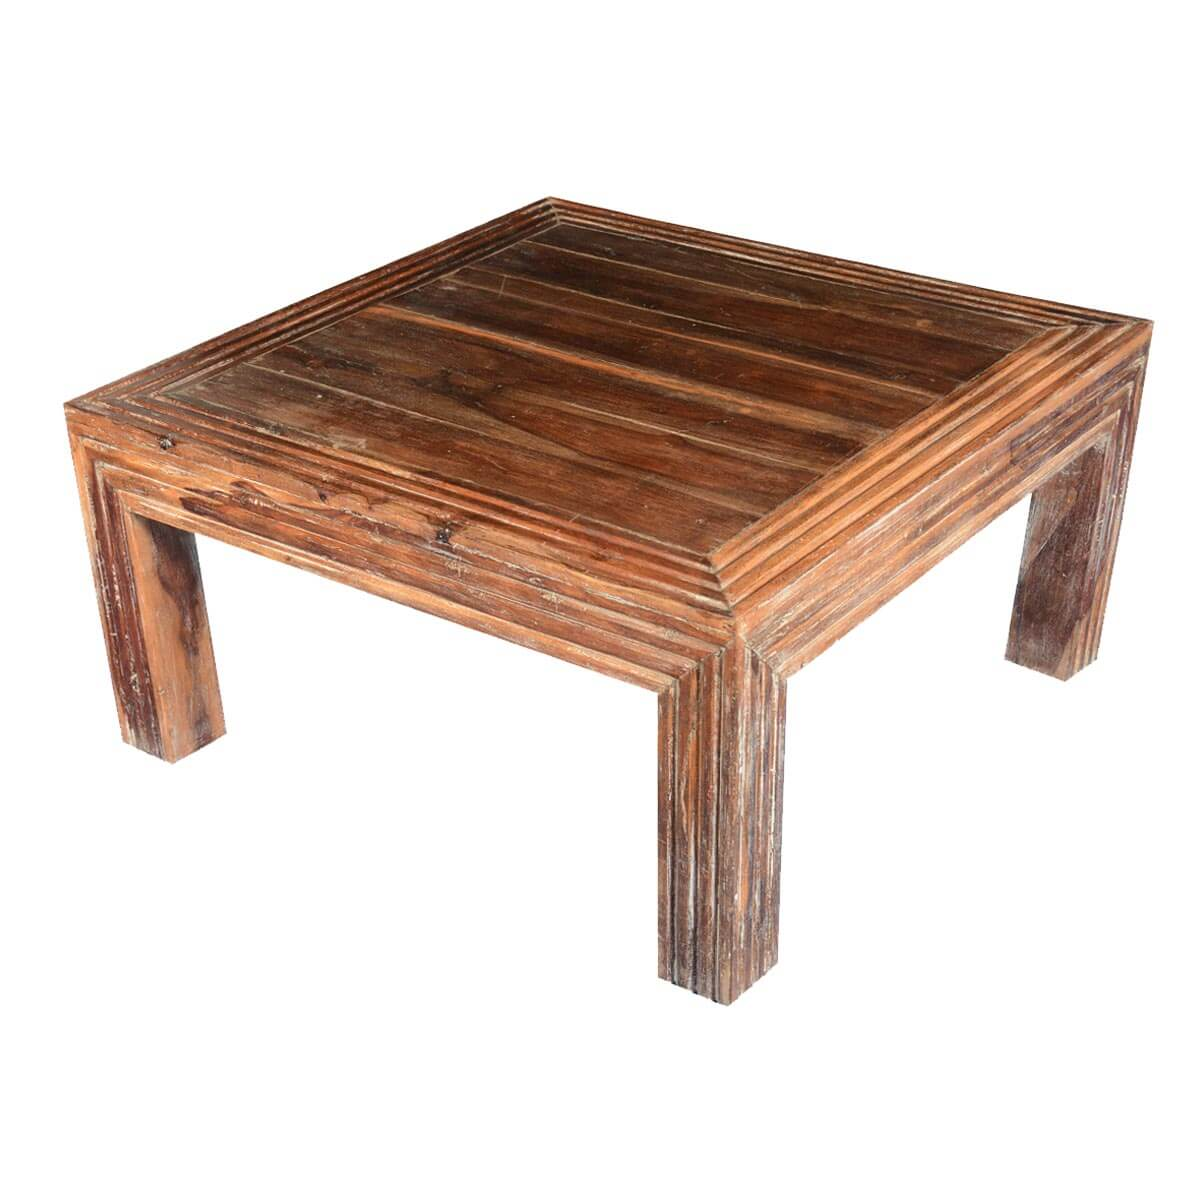 Contemporary square coffee table Wood square coffee tables